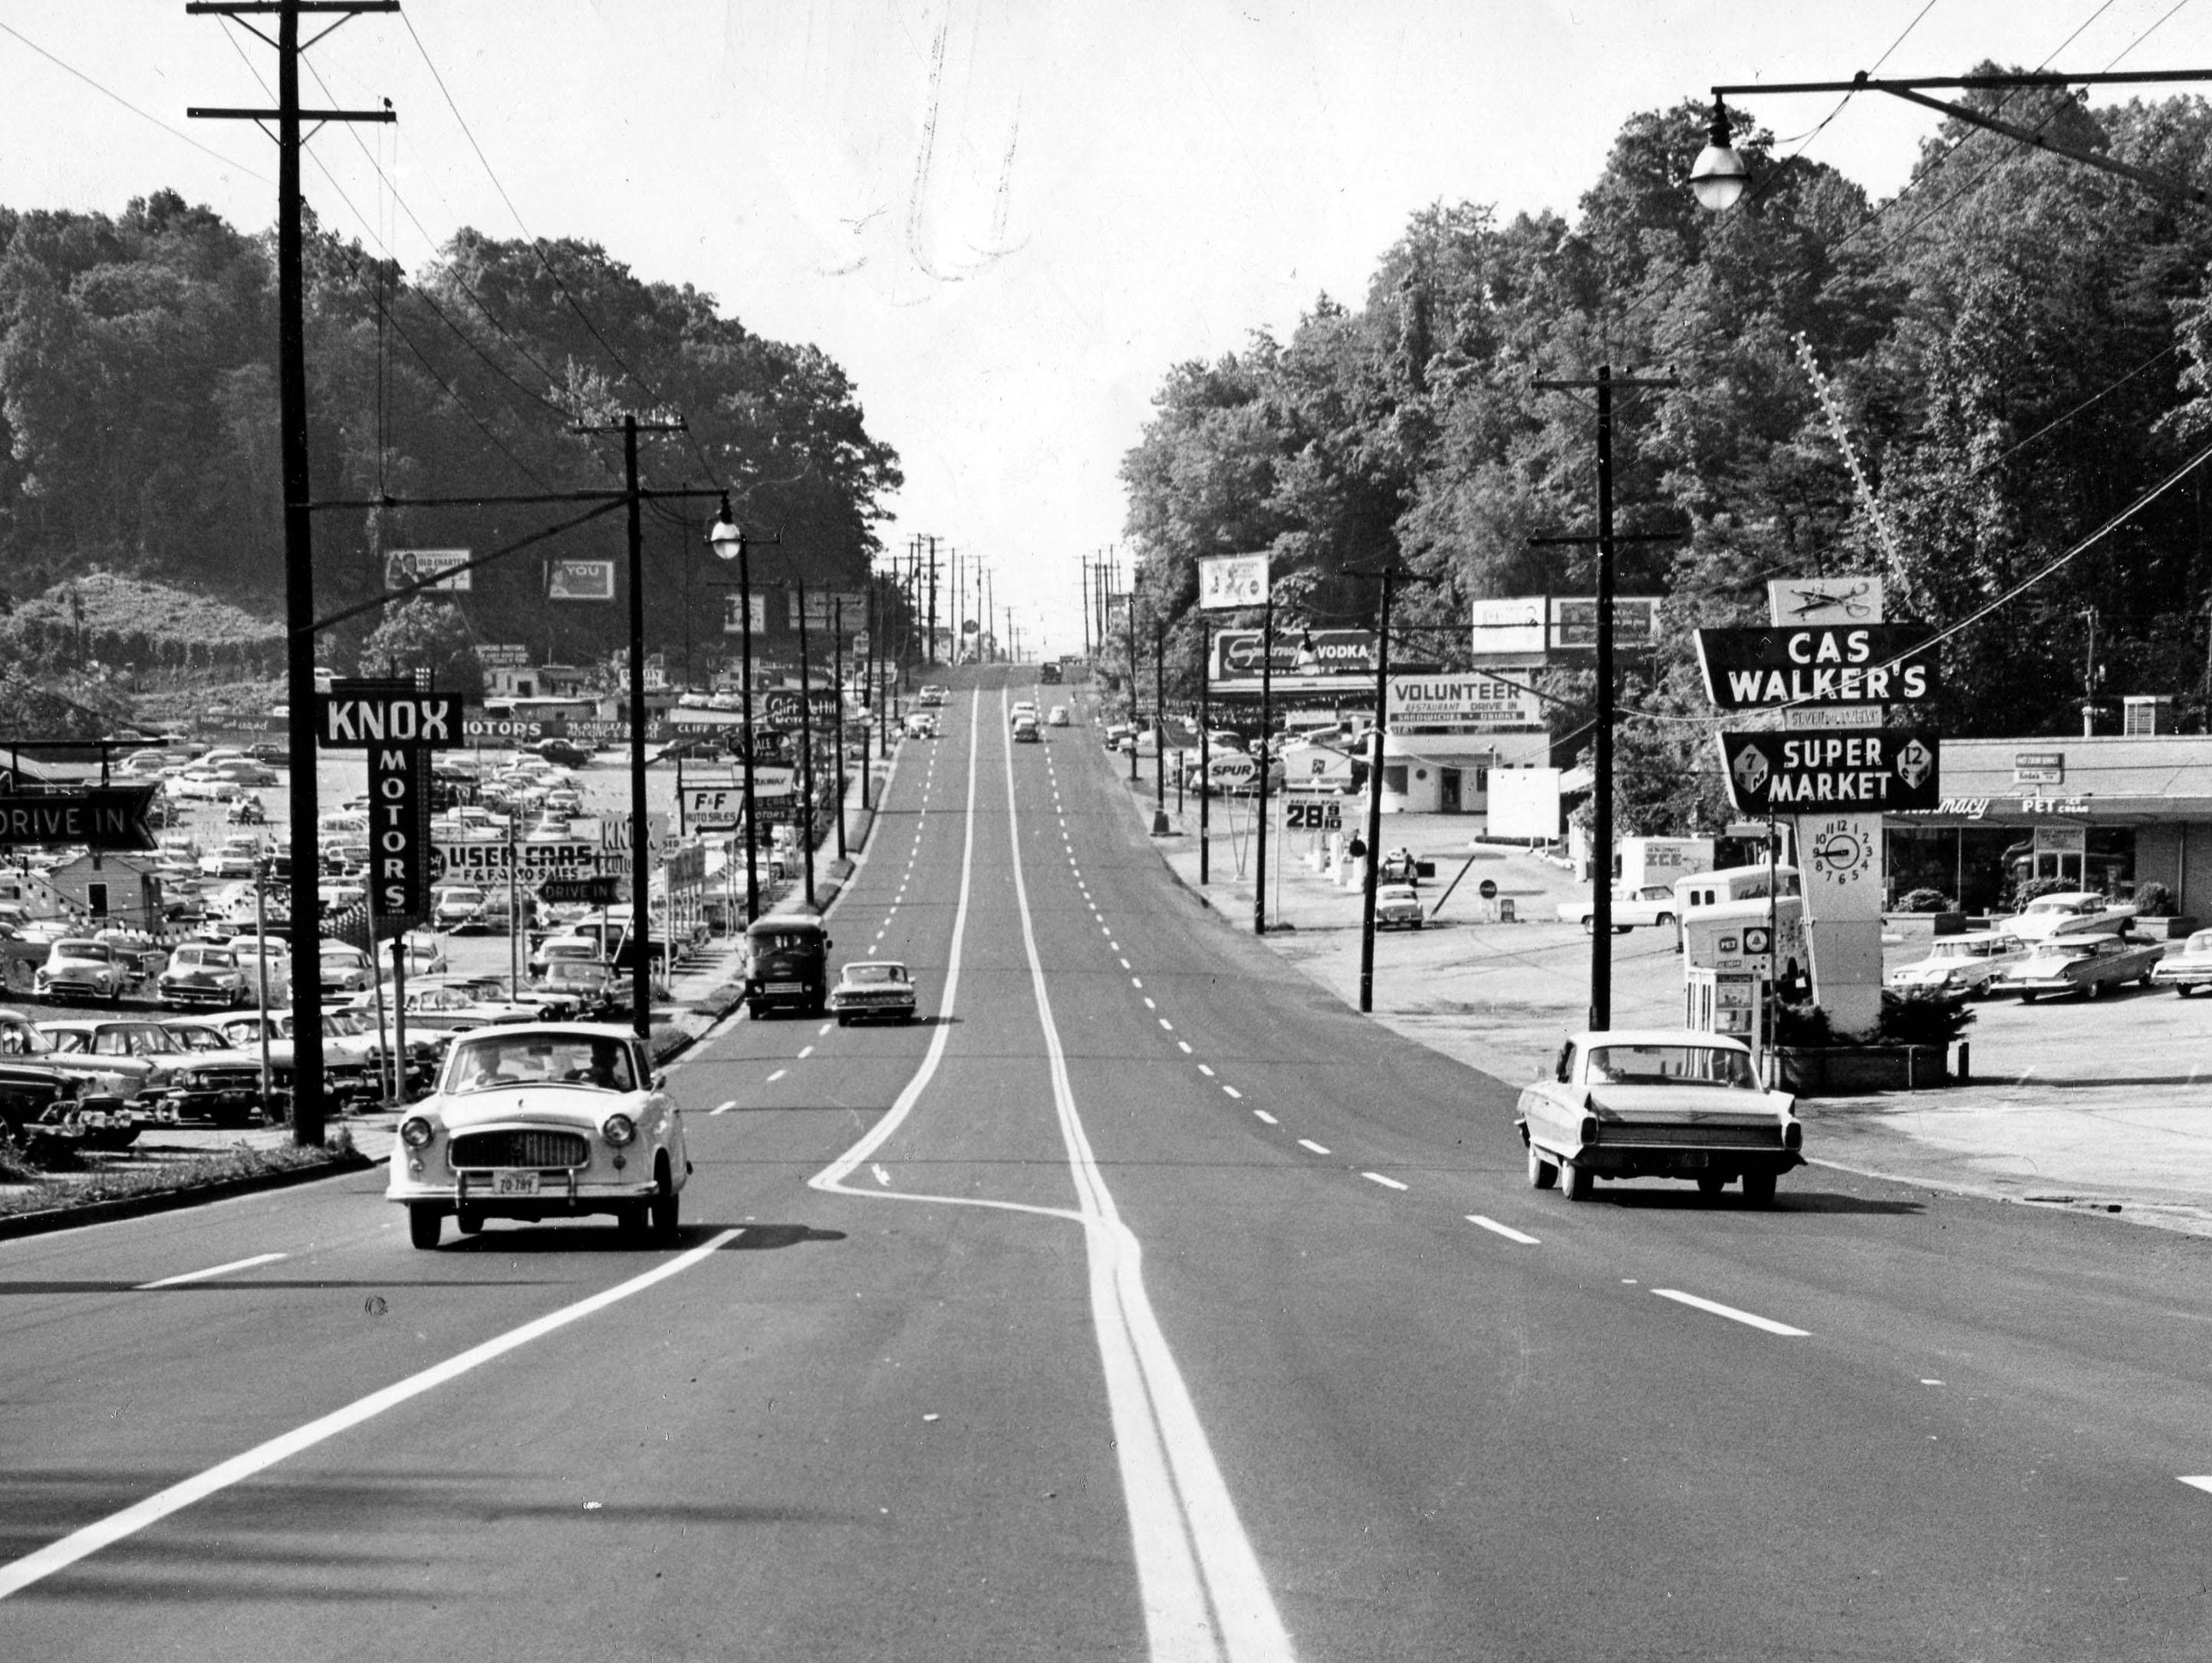 Chapman Highway in 1962 near the Cas Walker store.